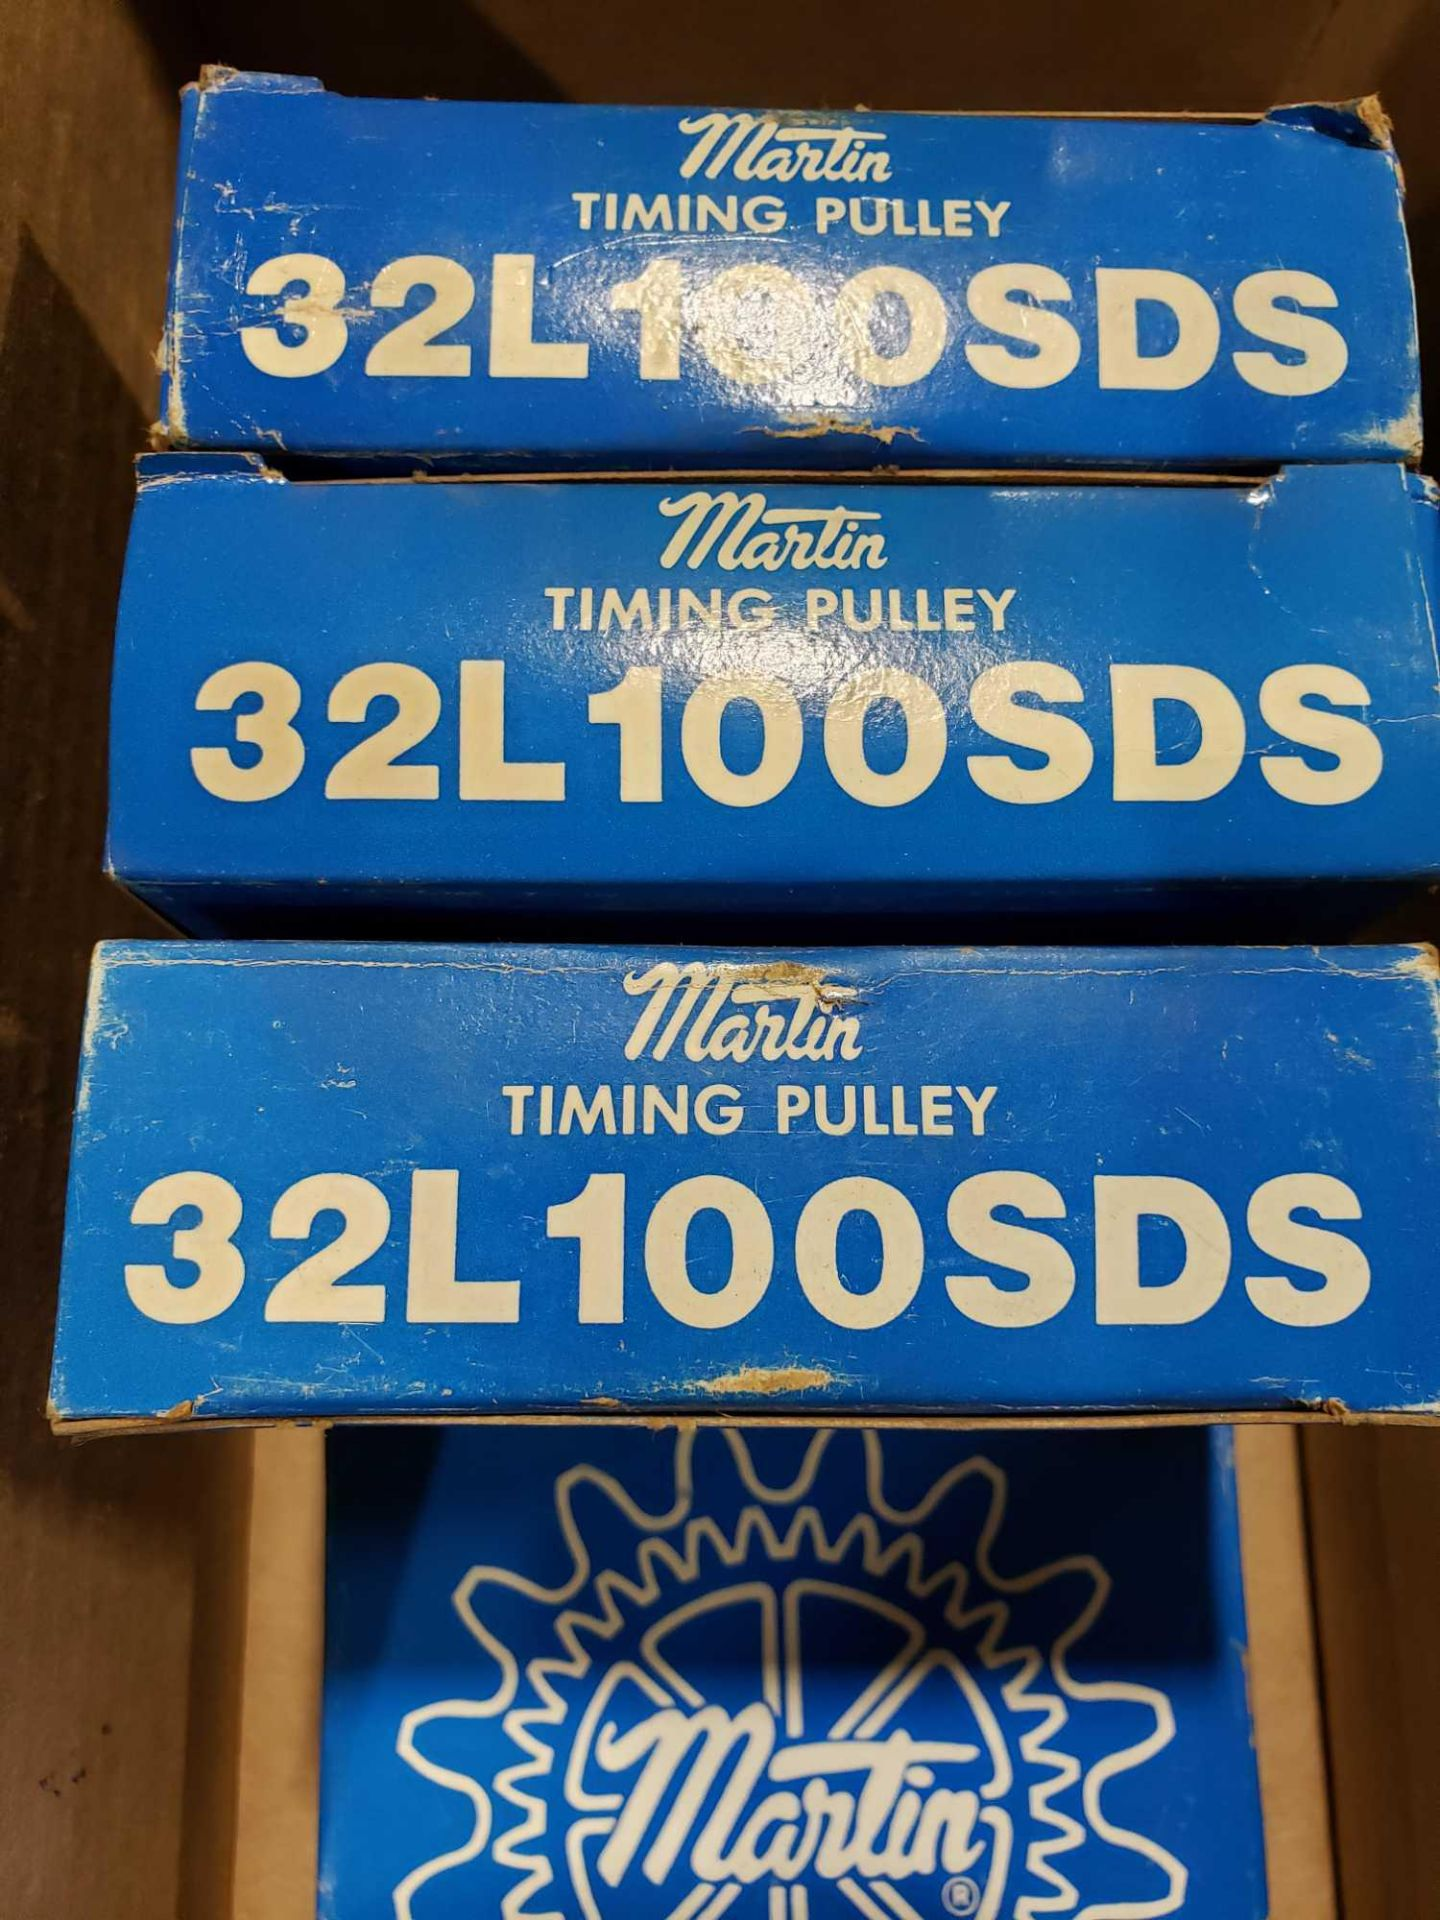 Lot 18 - Qty 4 - Martin timing pulley model 32L100SDS. New in box.